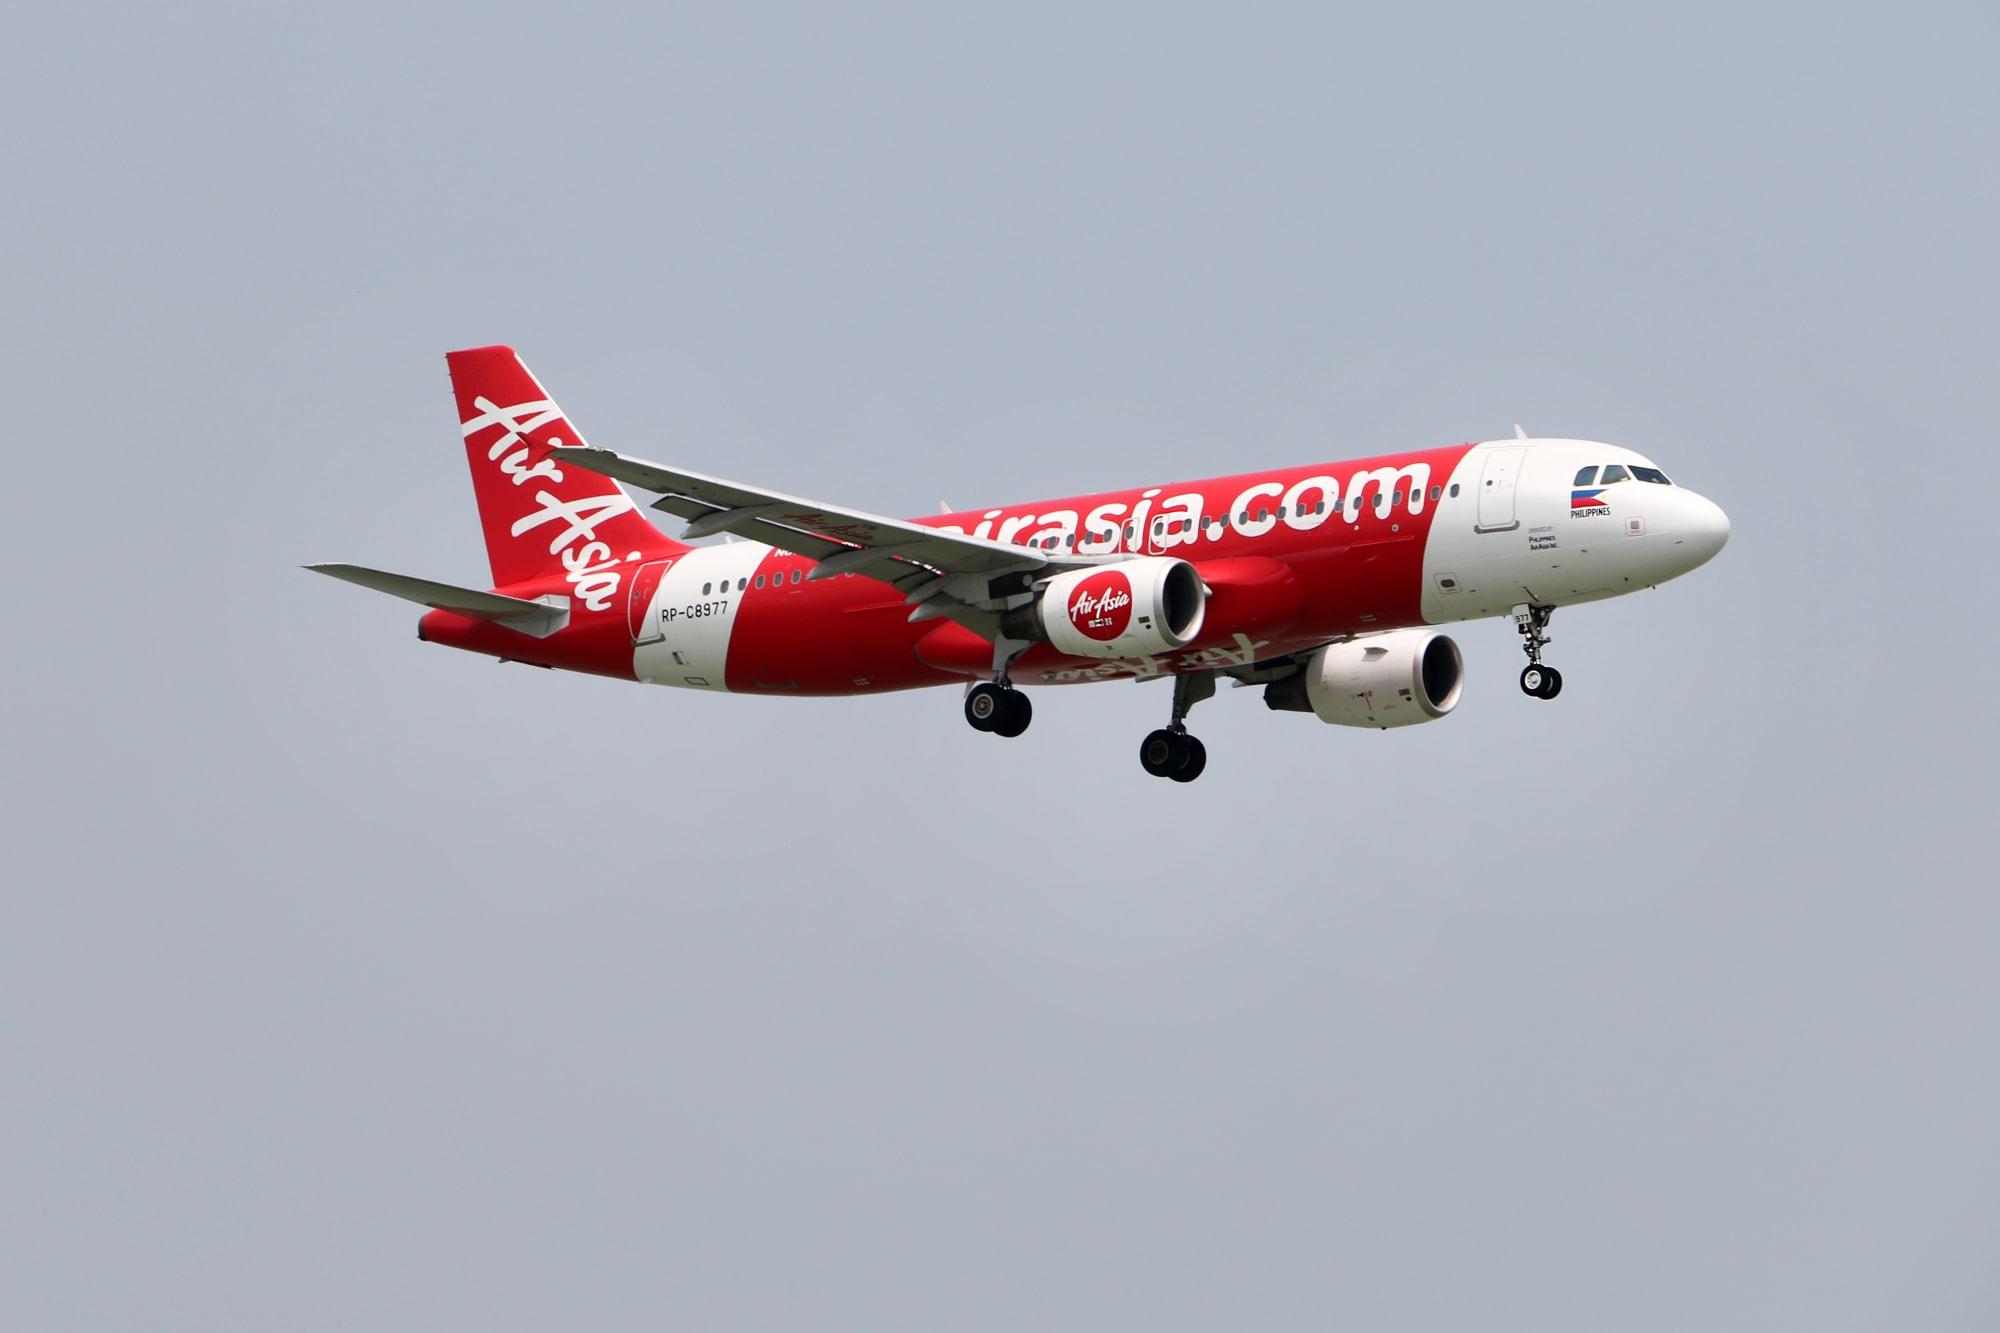 Rollout of Vaccines are keys to a faster recovery for the aviation sector - AirAsia